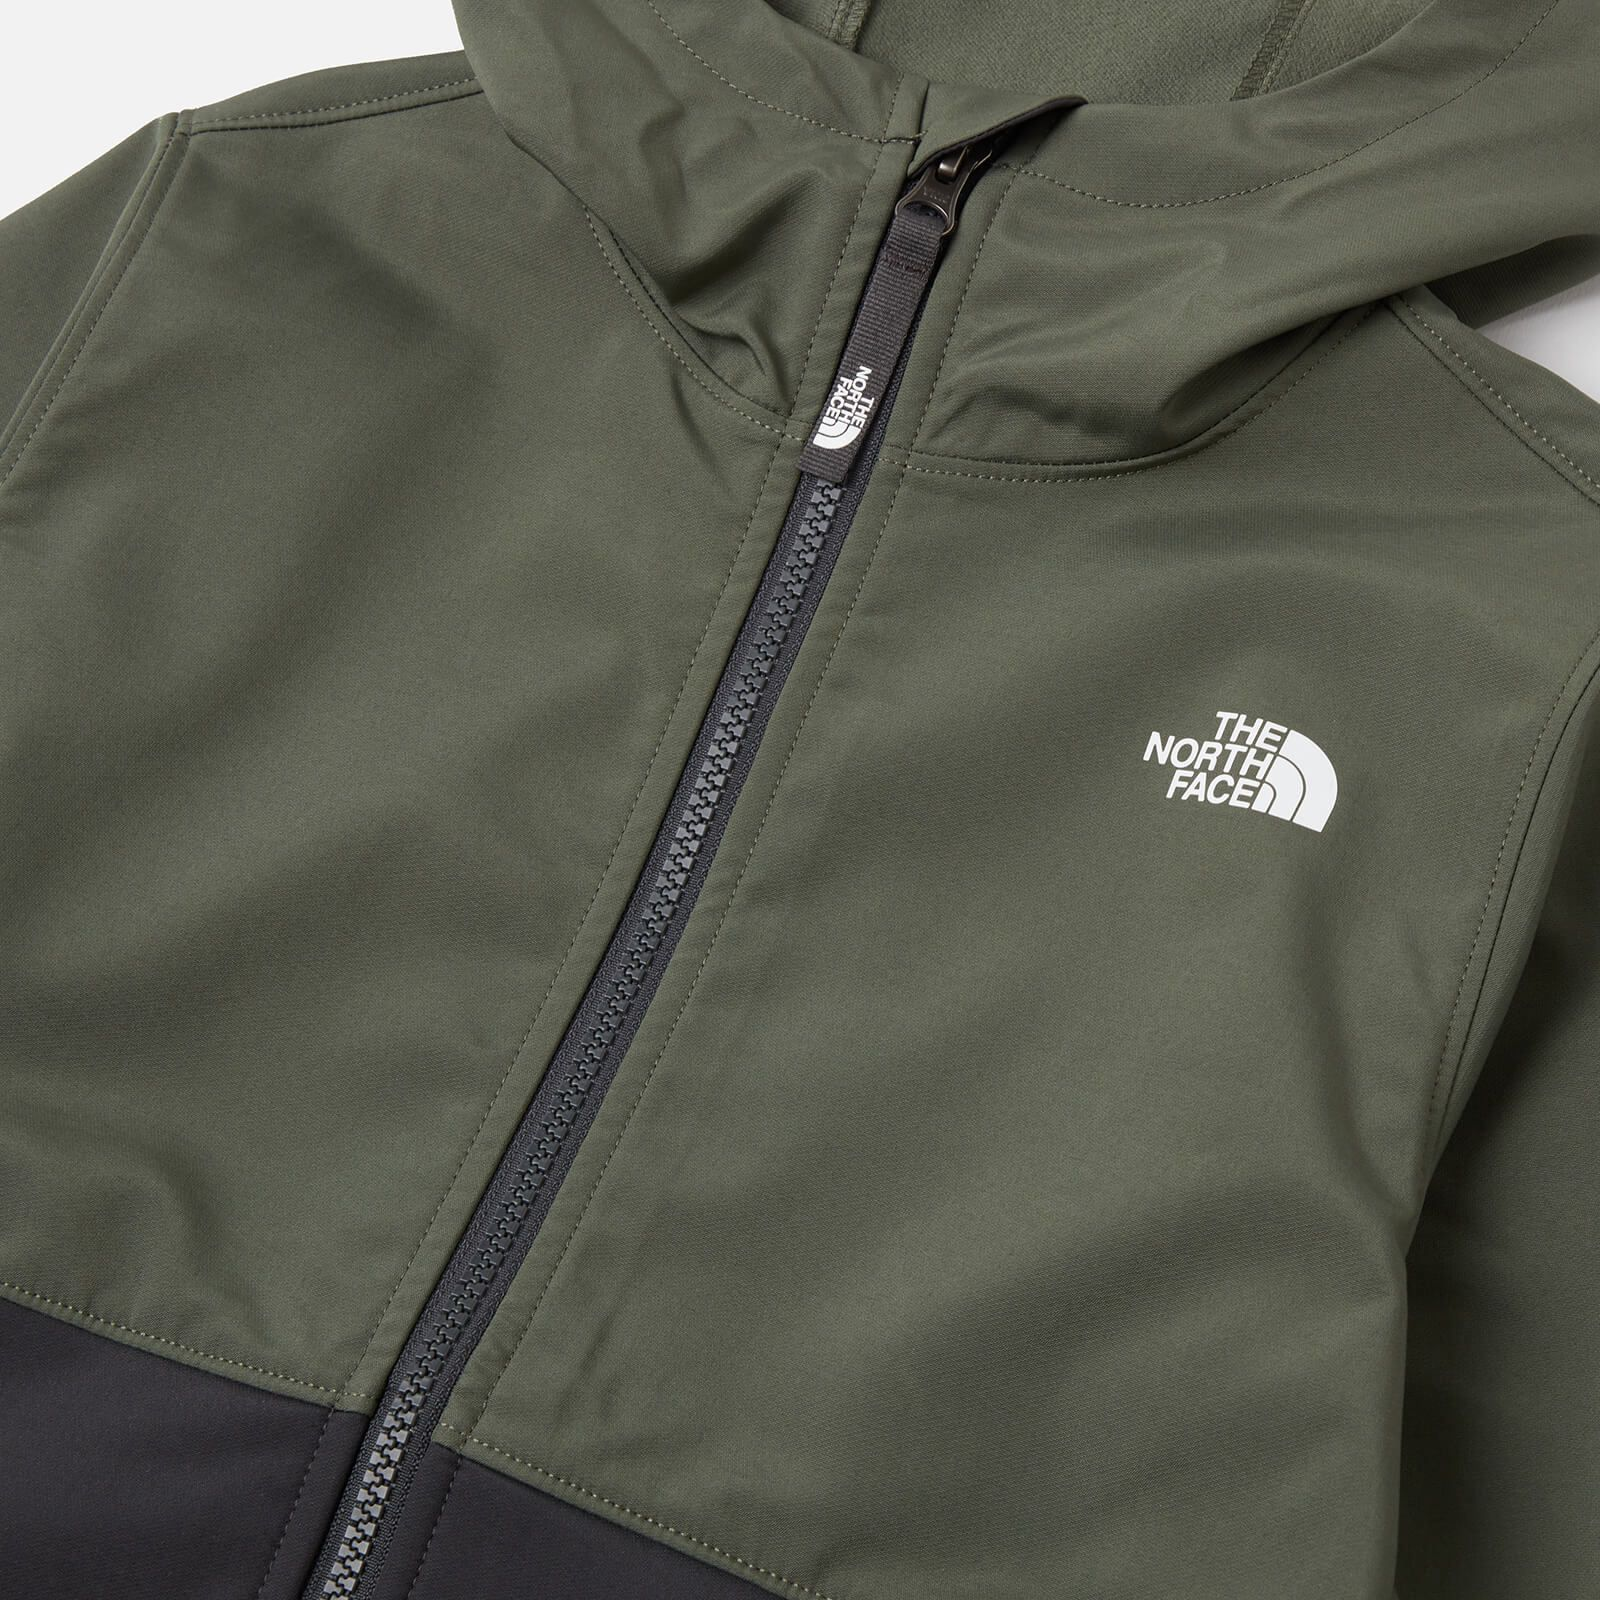 The North Face Boys Softshell Jacket Thyme Sponsored Boys Face North Country Fashion Women Soft Shell Jacket Jackets [ 1600 x 1600 Pixel ]